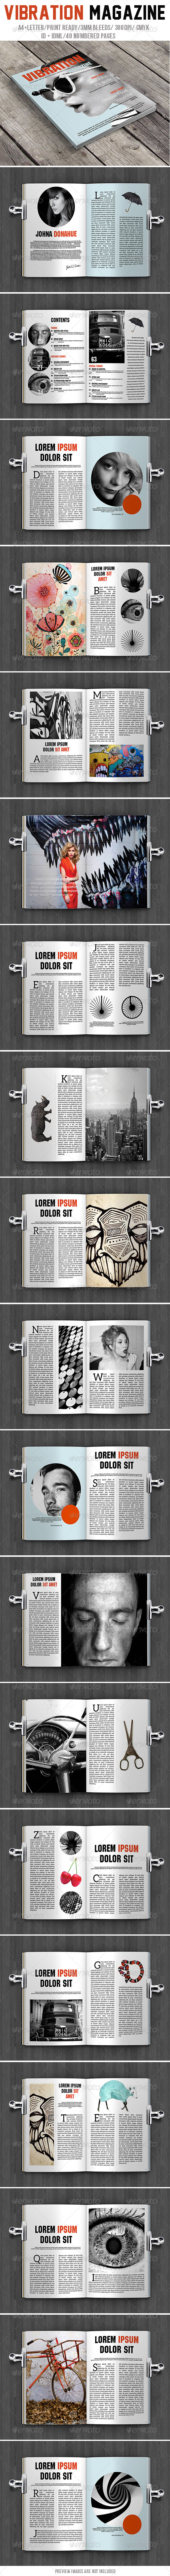 GraphicRiver Vibration Magazine 7805005